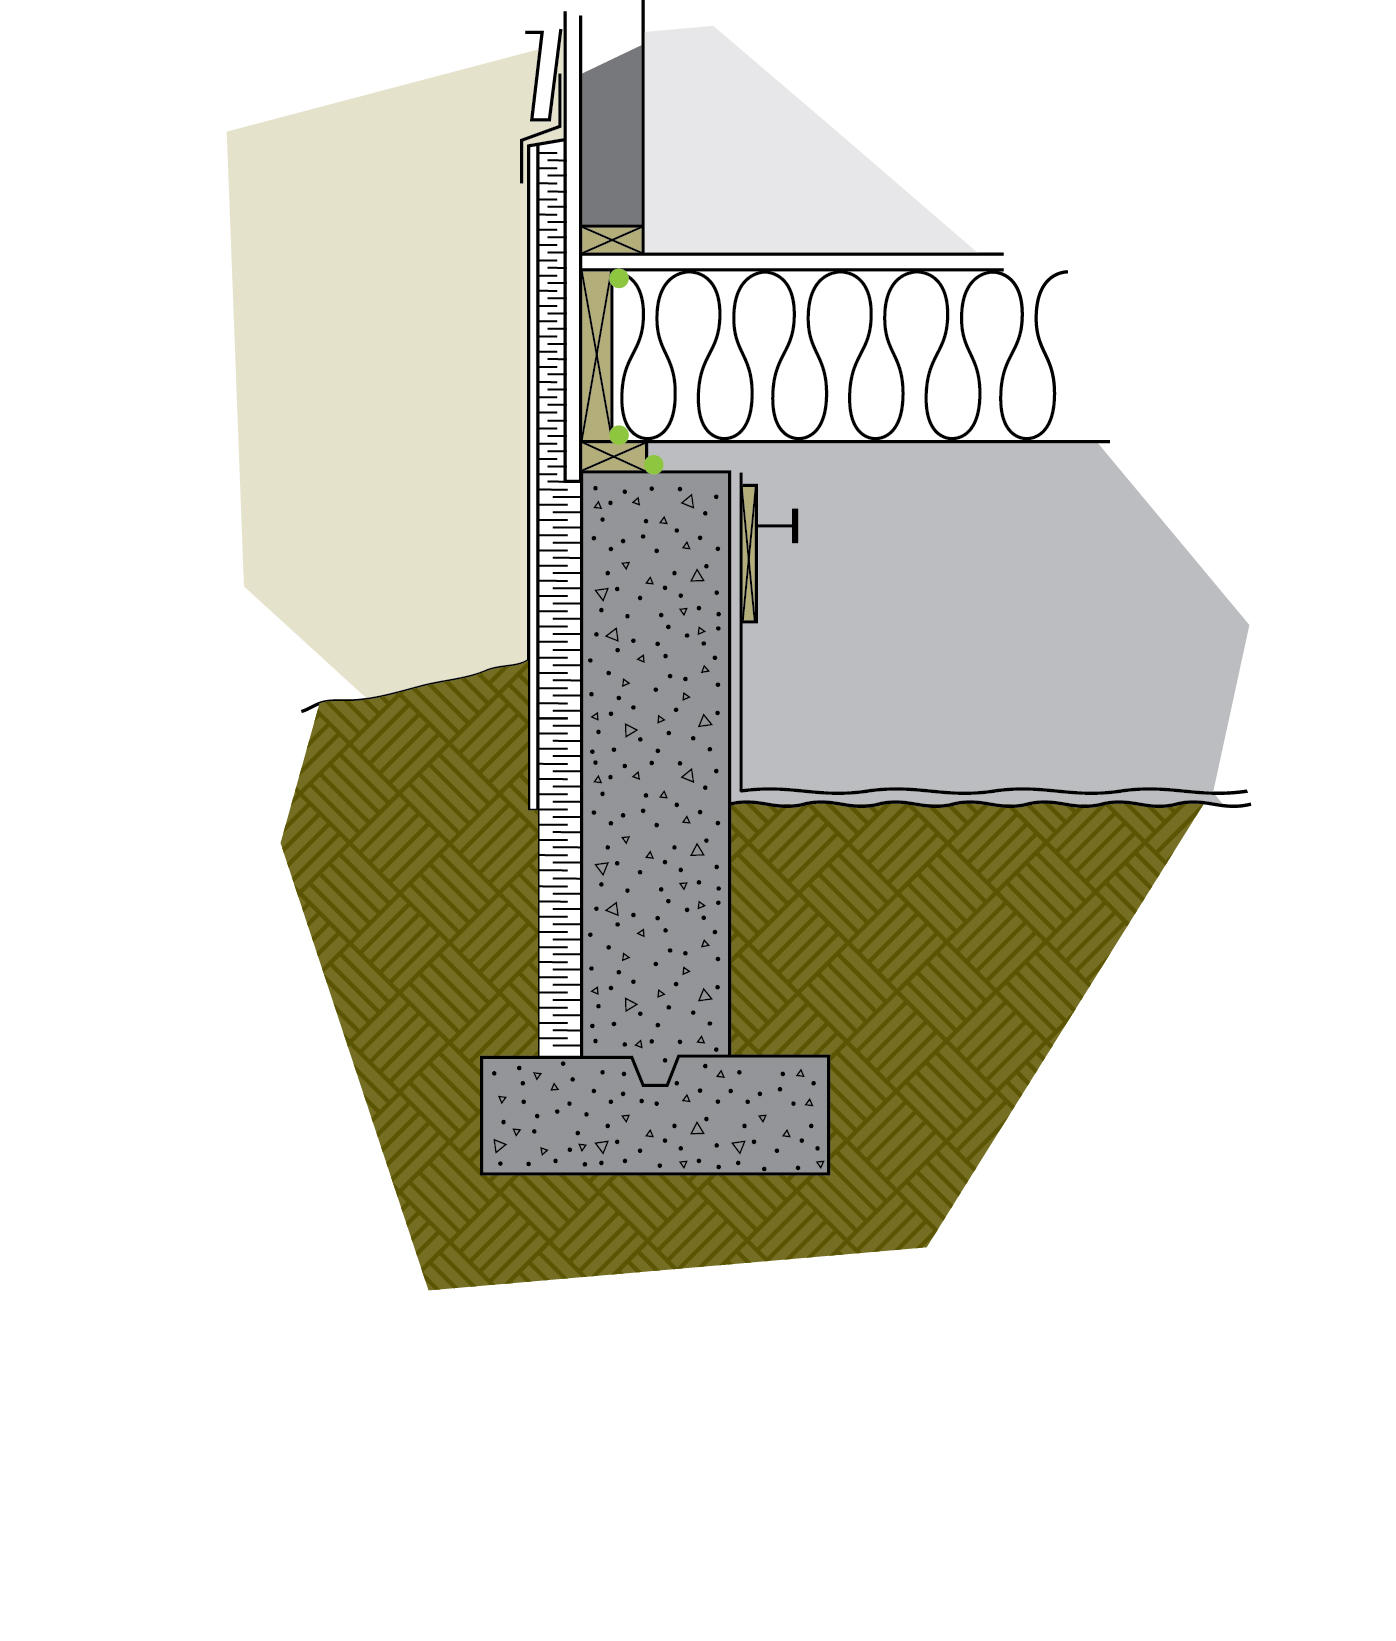 Figure 6-23 Insulation on the walls and in the floor creates a partially heated crawl space